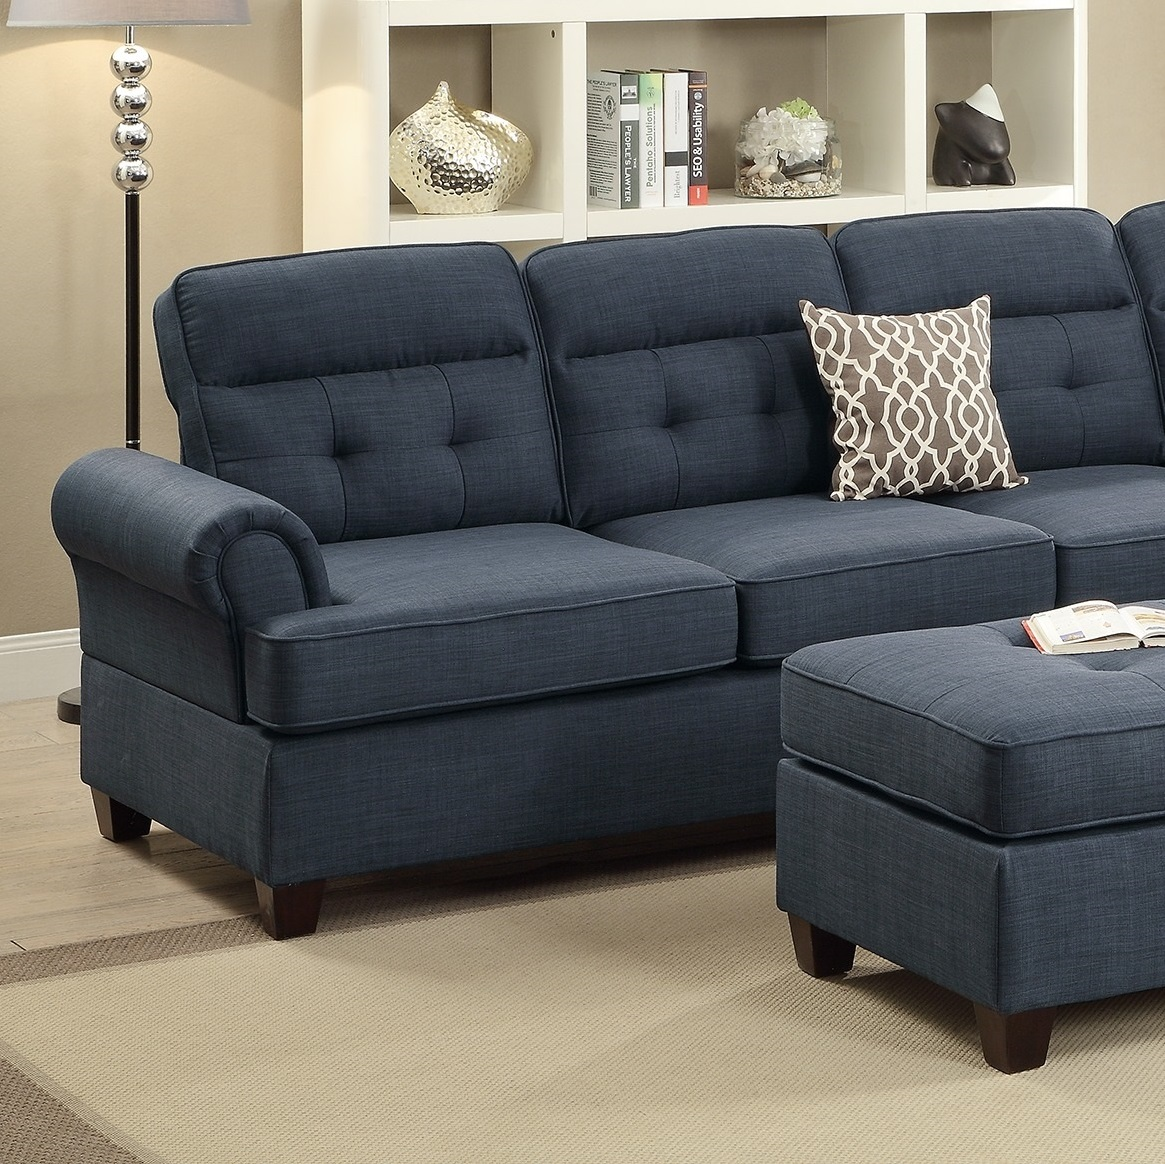 Fabric For Furniture: Sectional Blue Fabric Sofa Loveseat Wedge